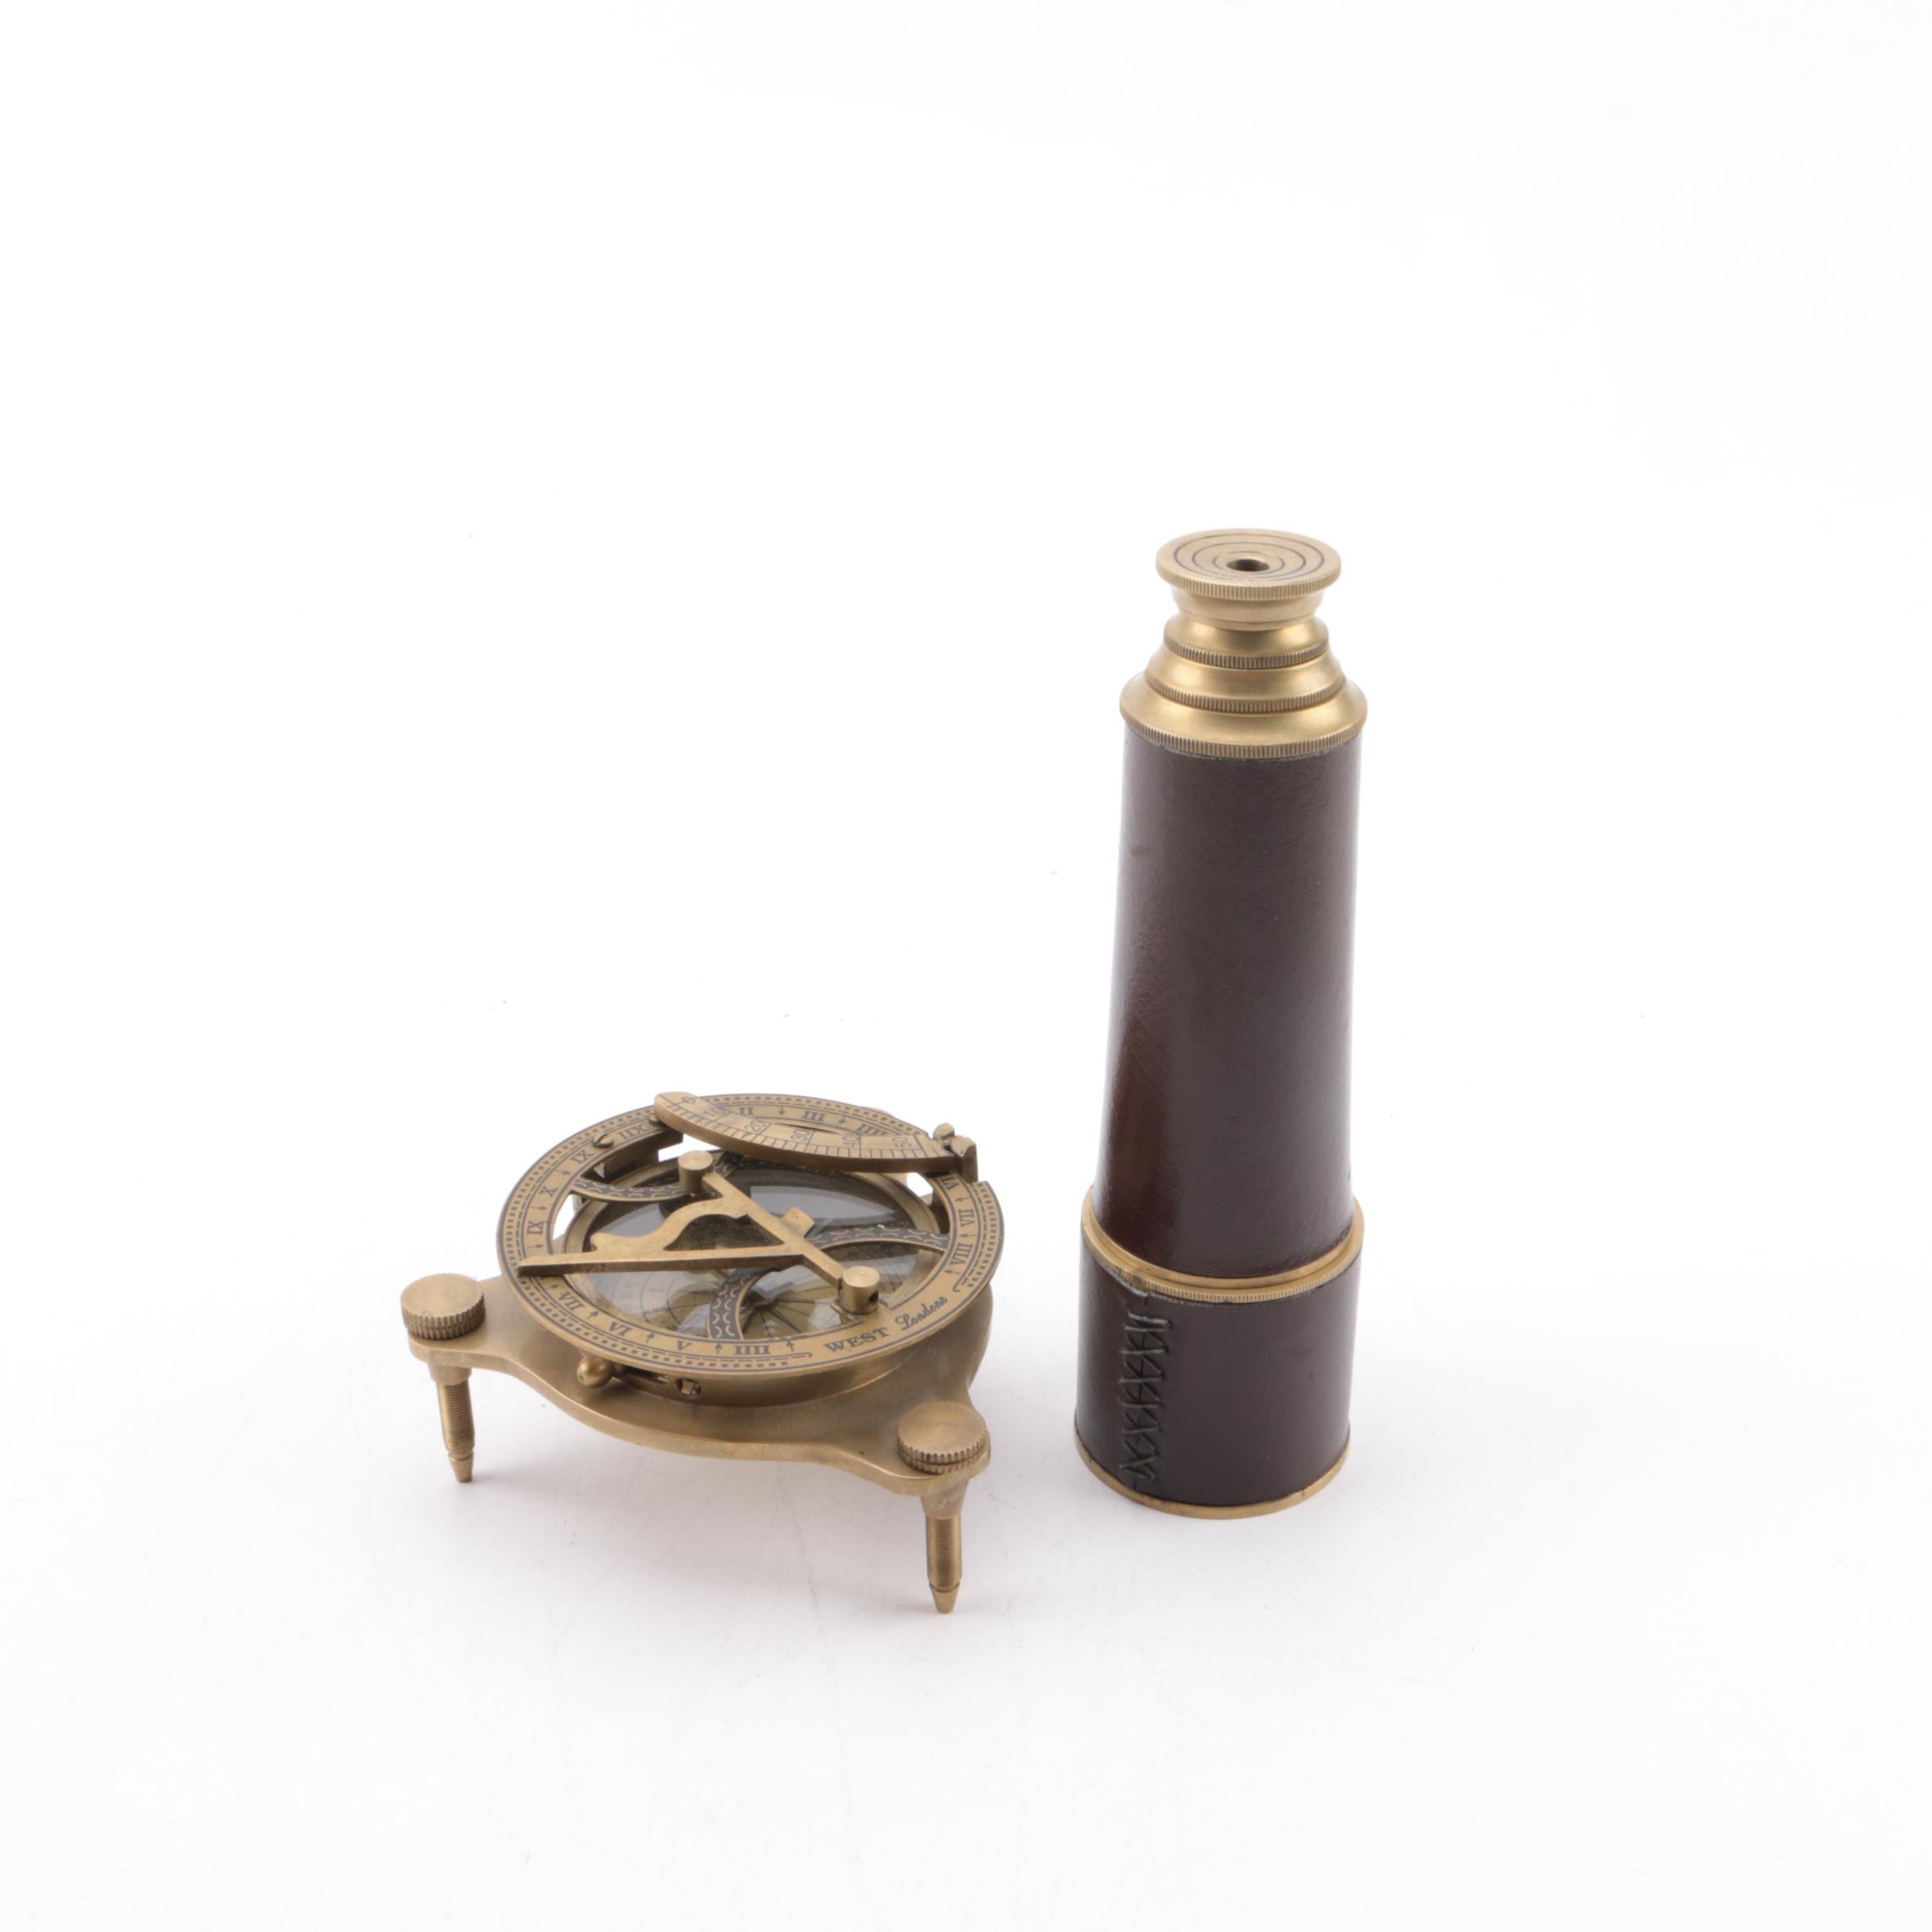 Vintage Looking Glass and Compass